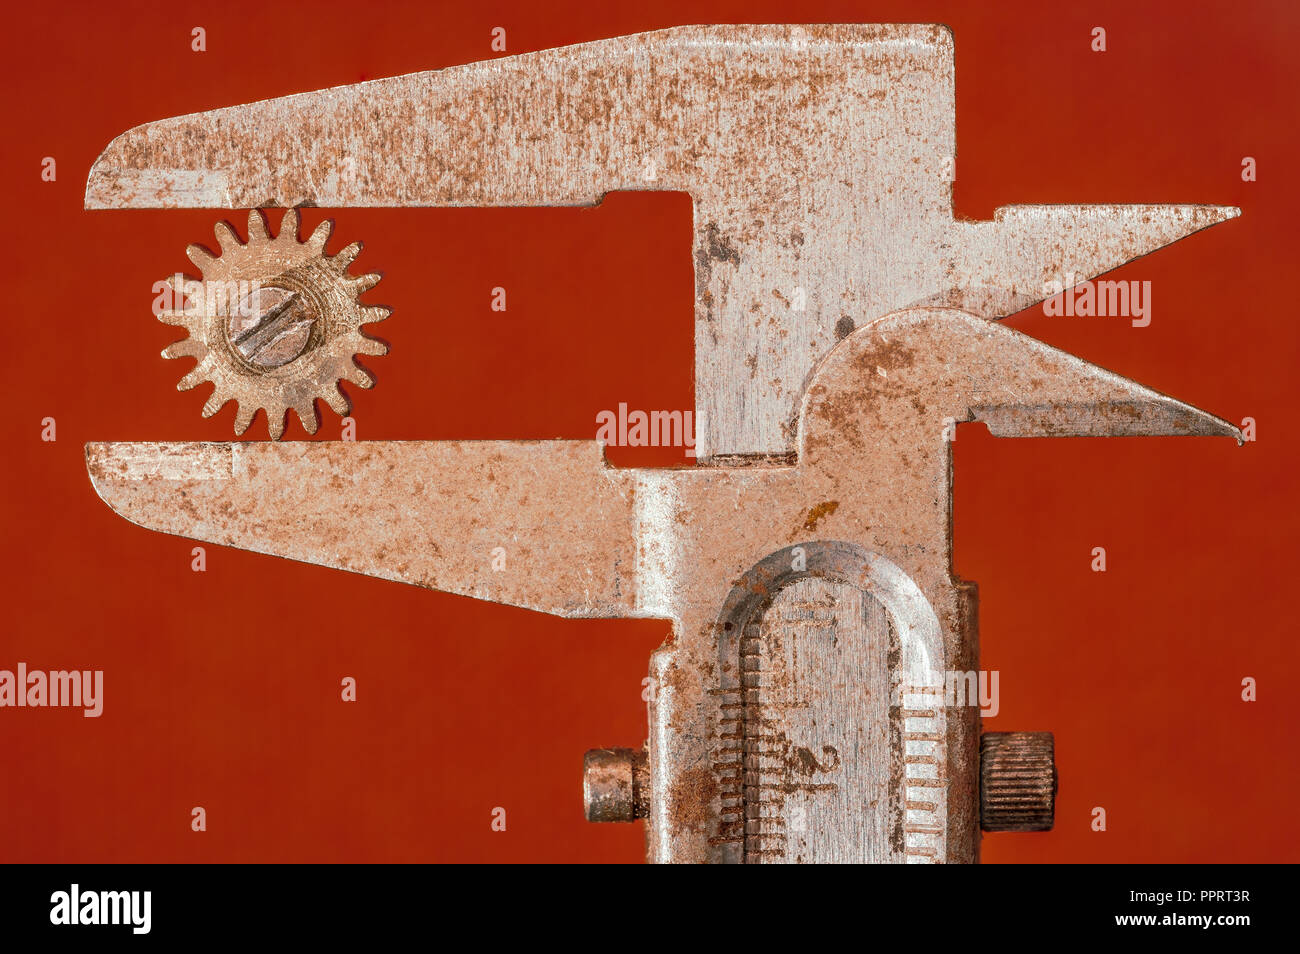 Diameter of a cogwheel is measured with a rusty caliper. - Stock Image